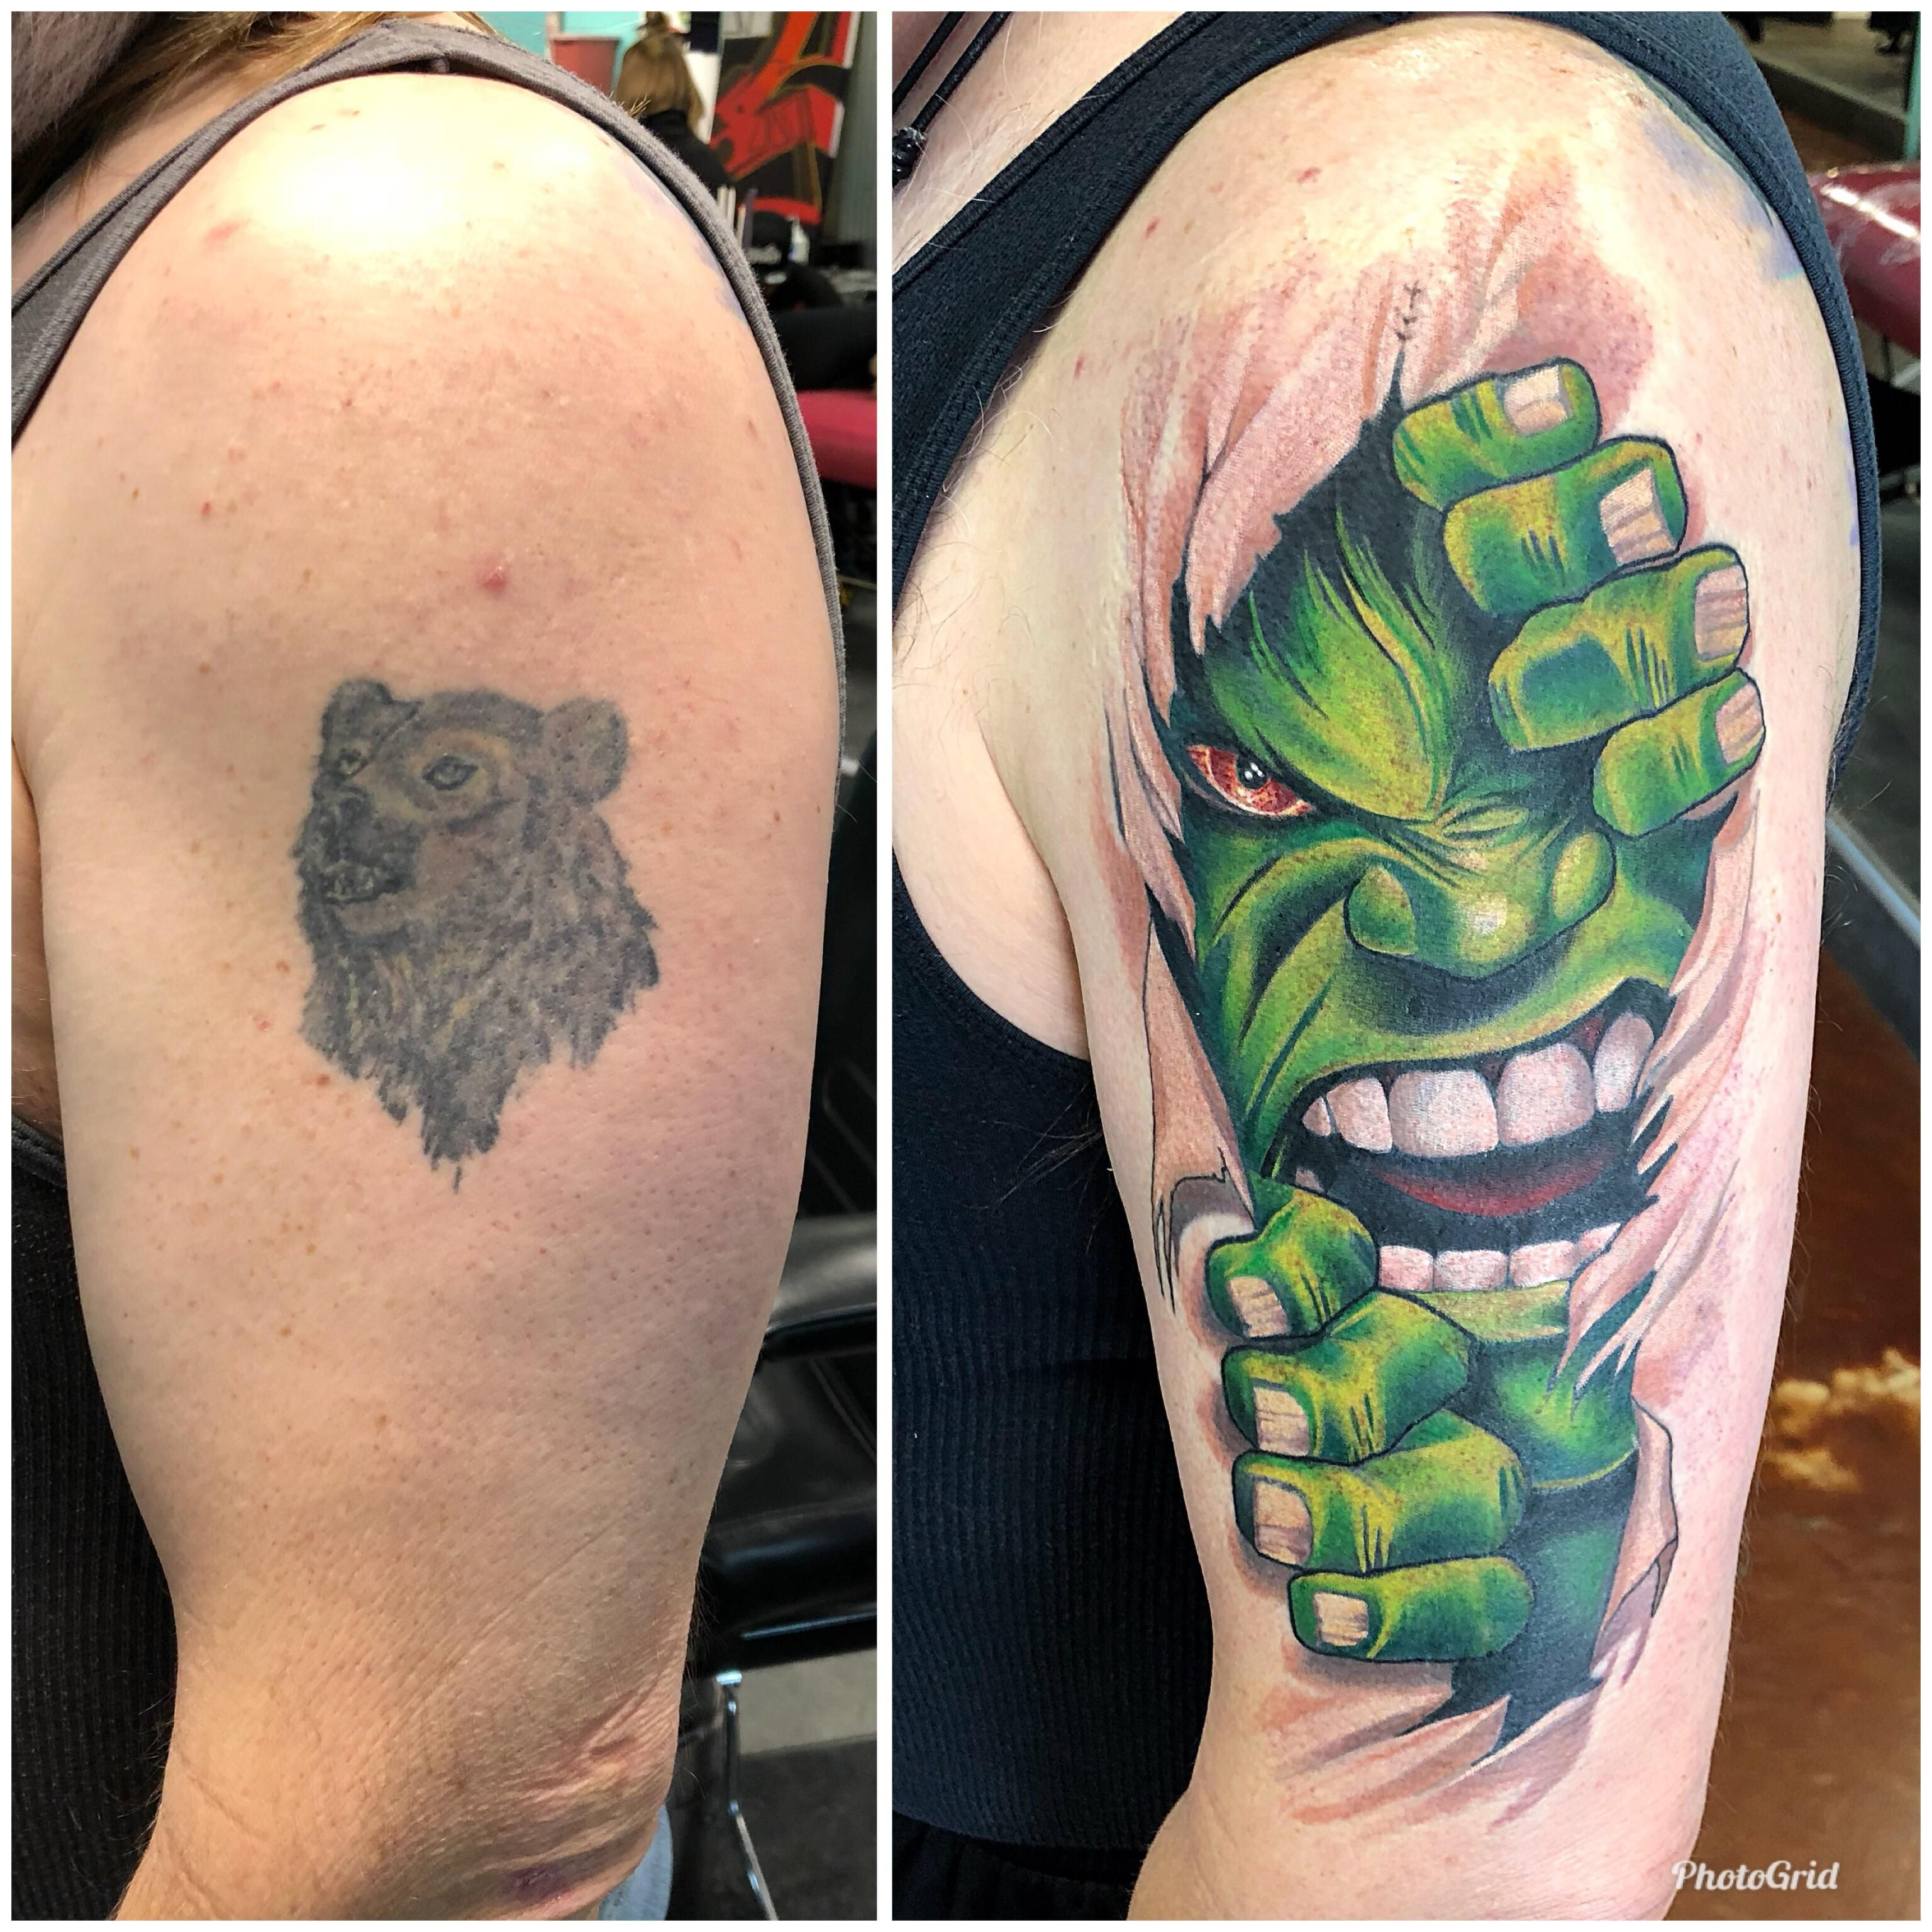 Hulk Coverup Tattoo Done By Paul Berkey At Dela Ink Denver Colorado Hulk Tattoo Tattoos Cover Up Tattoo